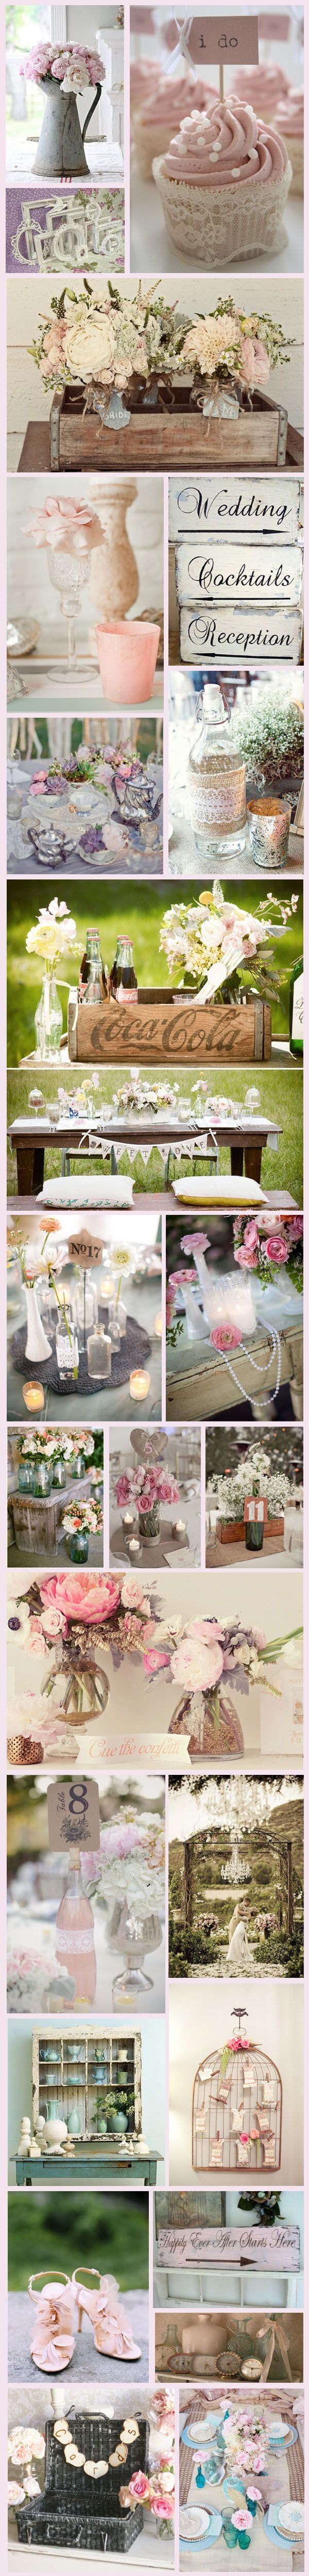 Wedding Inspiration ♥